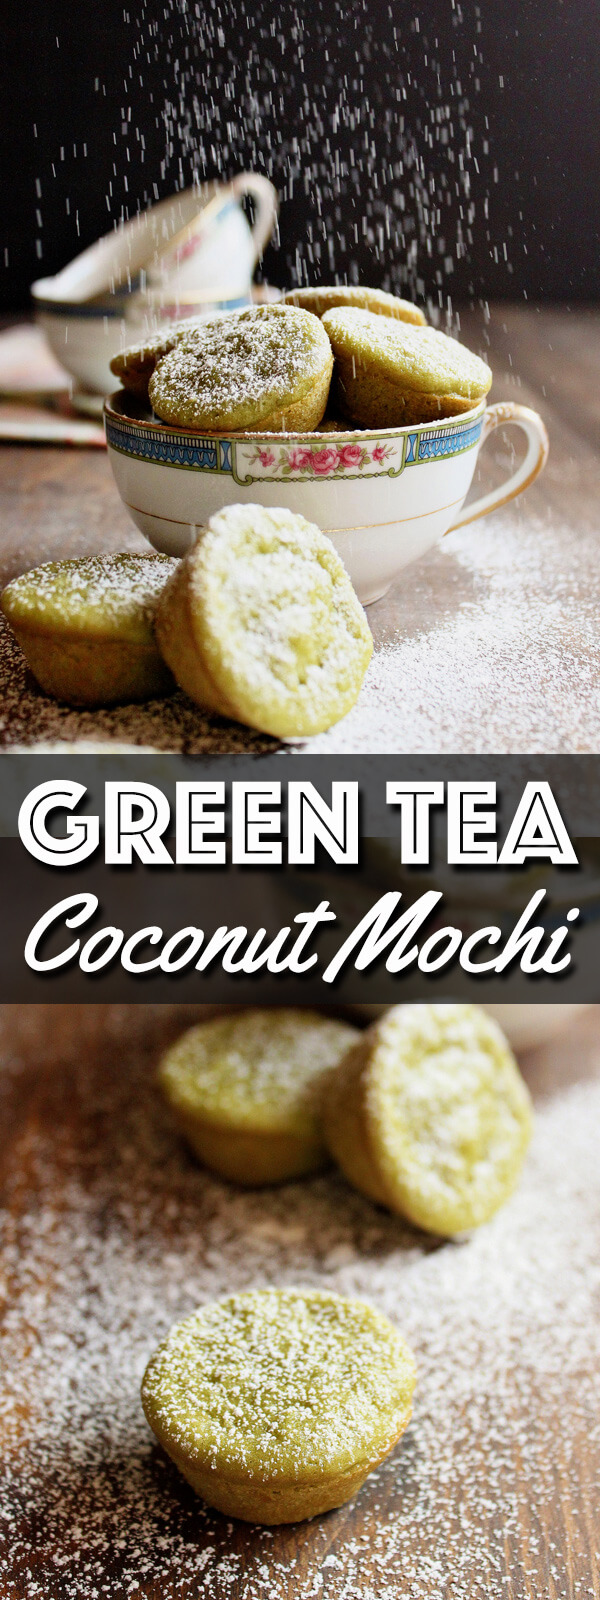 These Green Tea Coconut Mochi are chewy little treats made with coconut milk and sweet rice flour with a touch of delicate Matcha green tea powder. They are gluten free and the green color is completely natural!